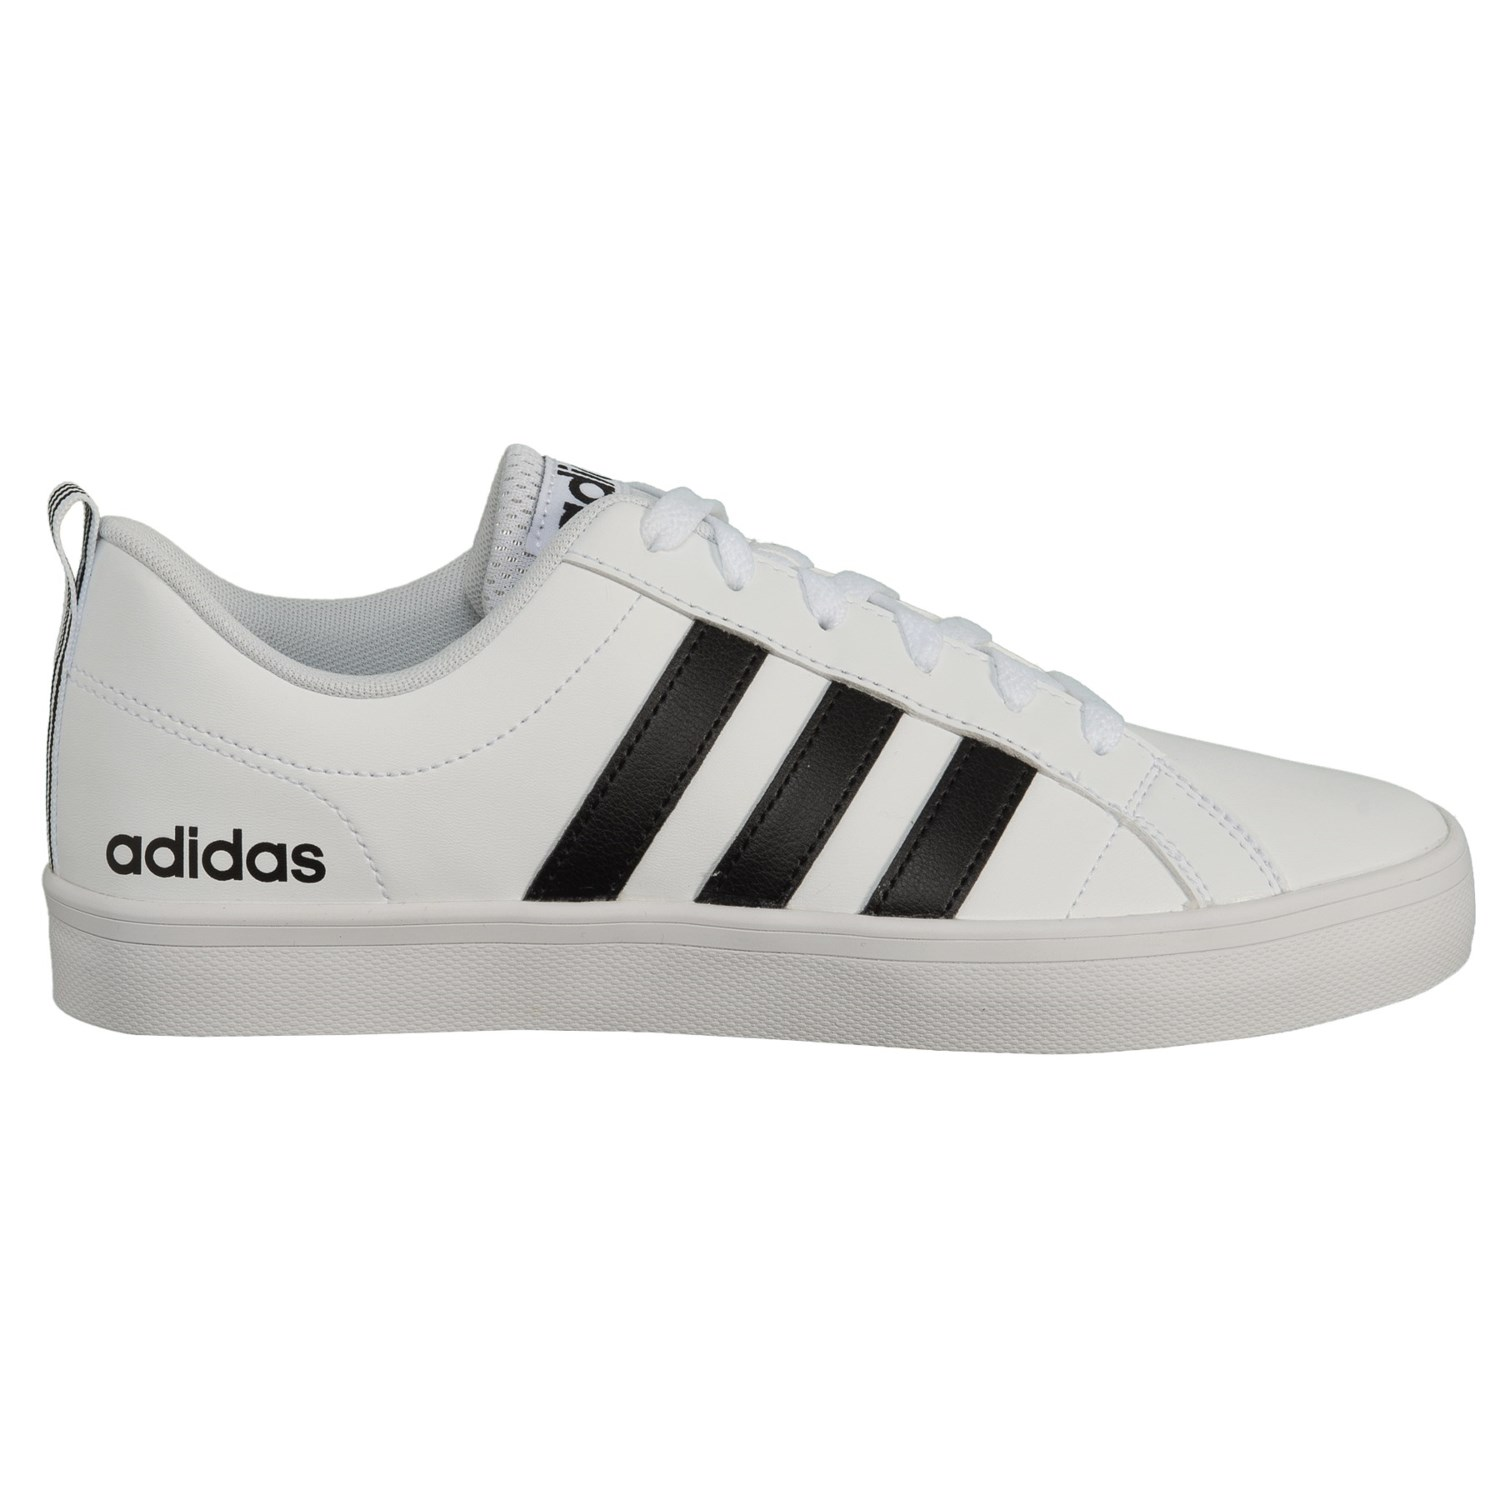 adidas Neo Neo Neo Pace Baskets For Femme Save 36% 089484